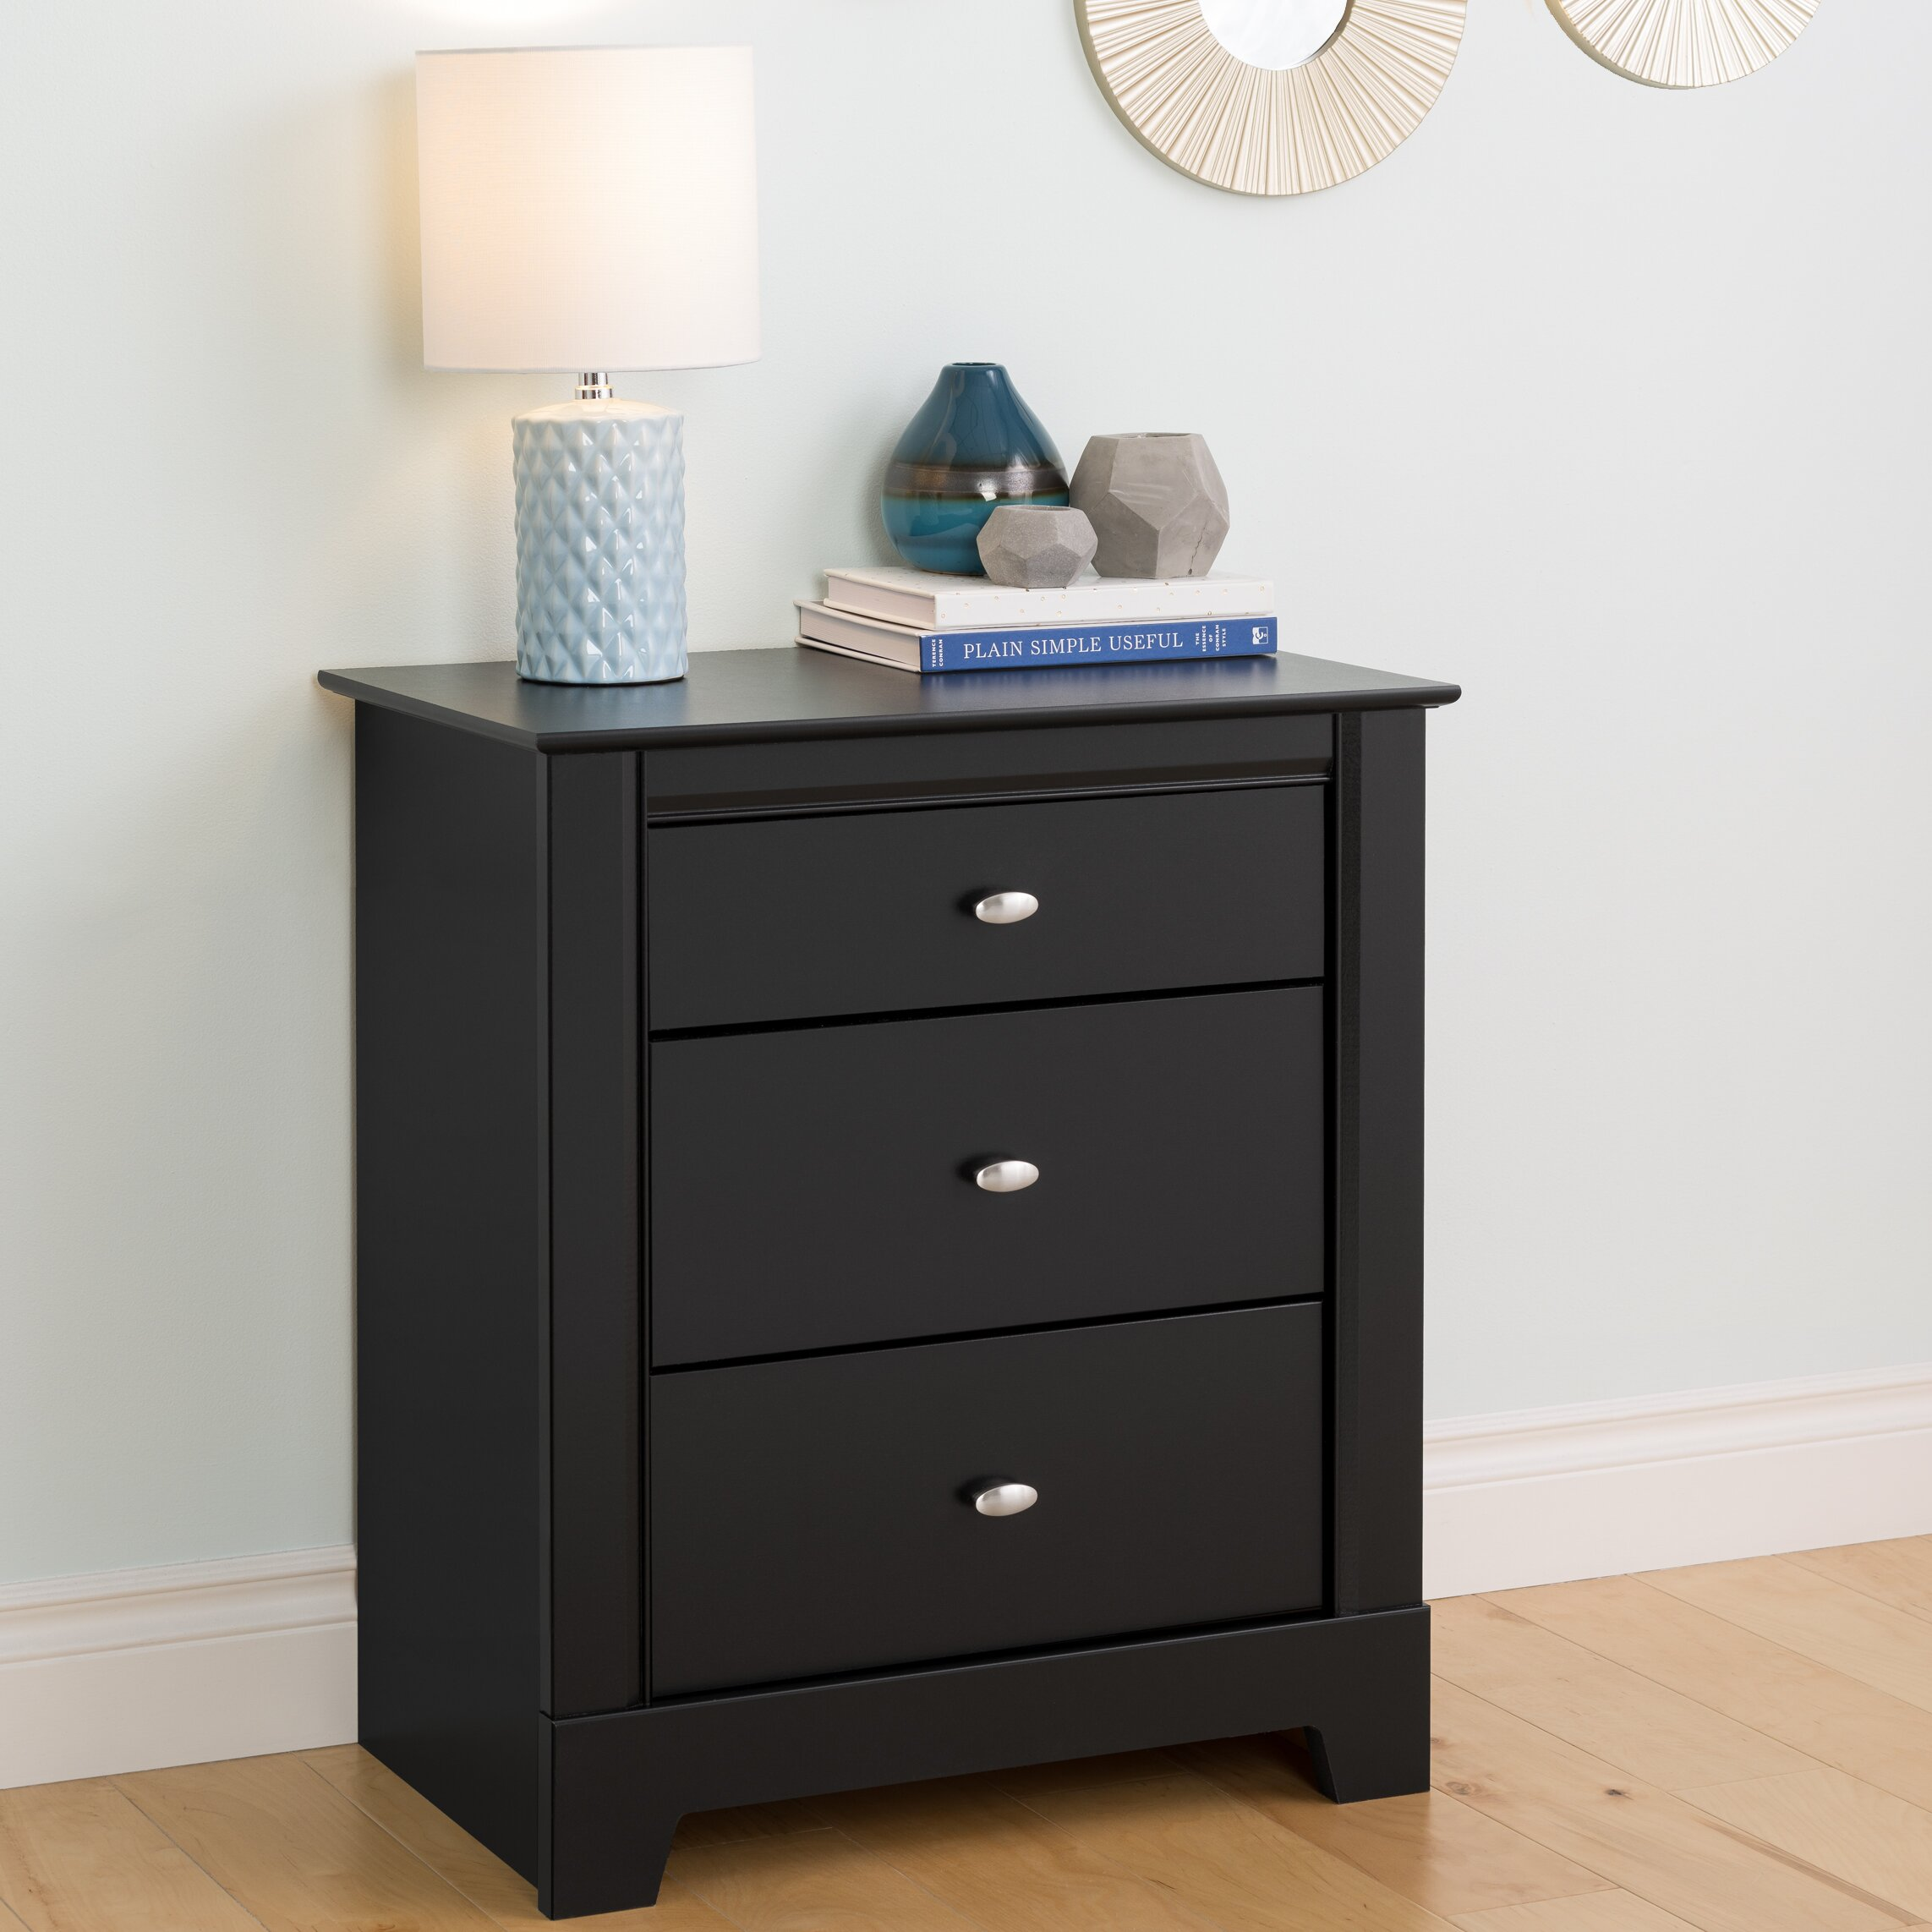 red barrel studio belgium black 3 drawer nightstand reviews. Black Bedroom Furniture Sets. Home Design Ideas